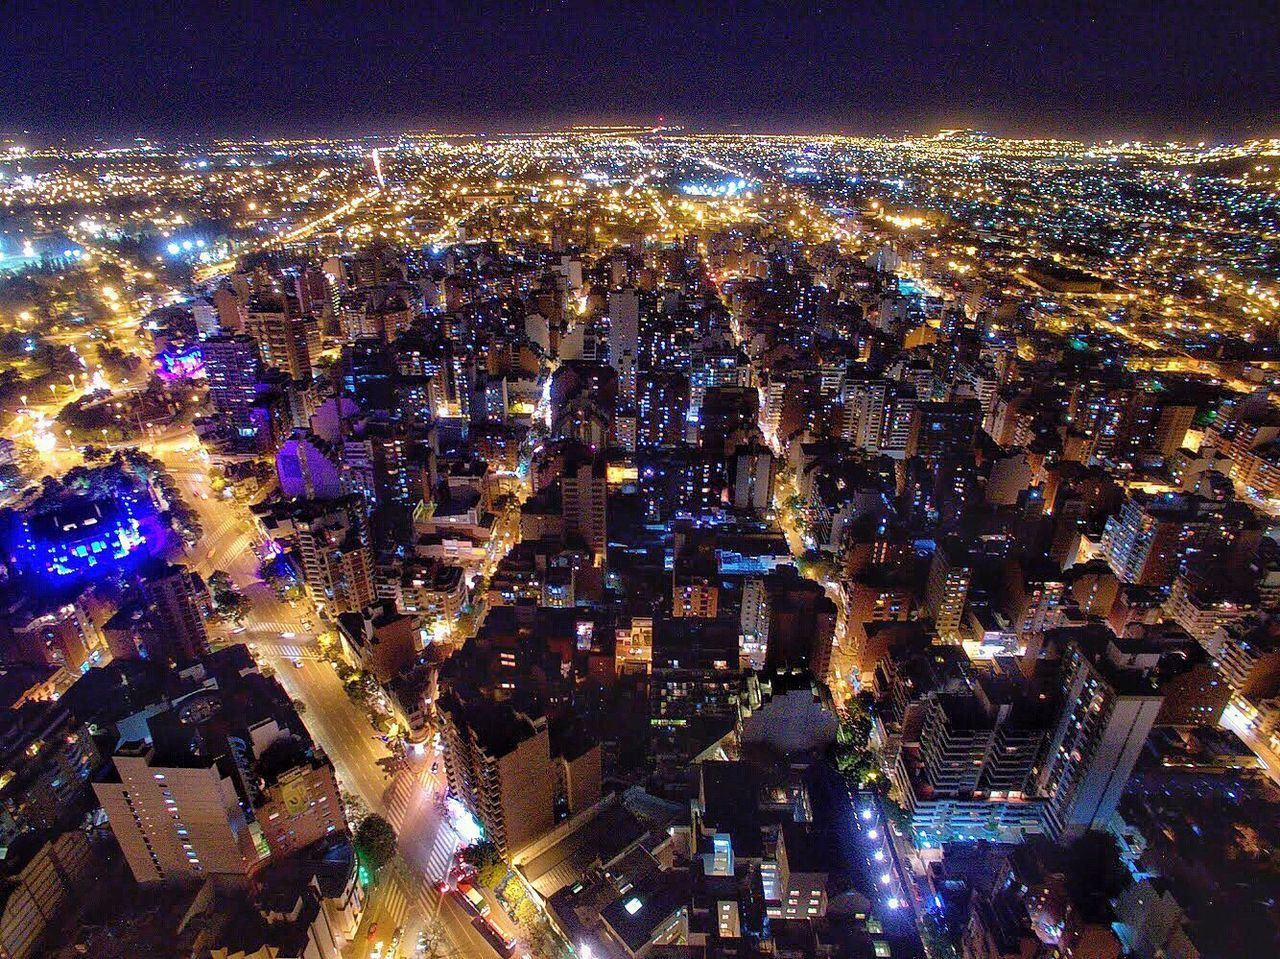 Night Illuminated Cityscape Architecture City Building Exterior Aerial View Built Structure Outdoors Sky Travel Destinations No People Community Nightlife Modern Skyscraper Urban Skyline EyeEm Selects